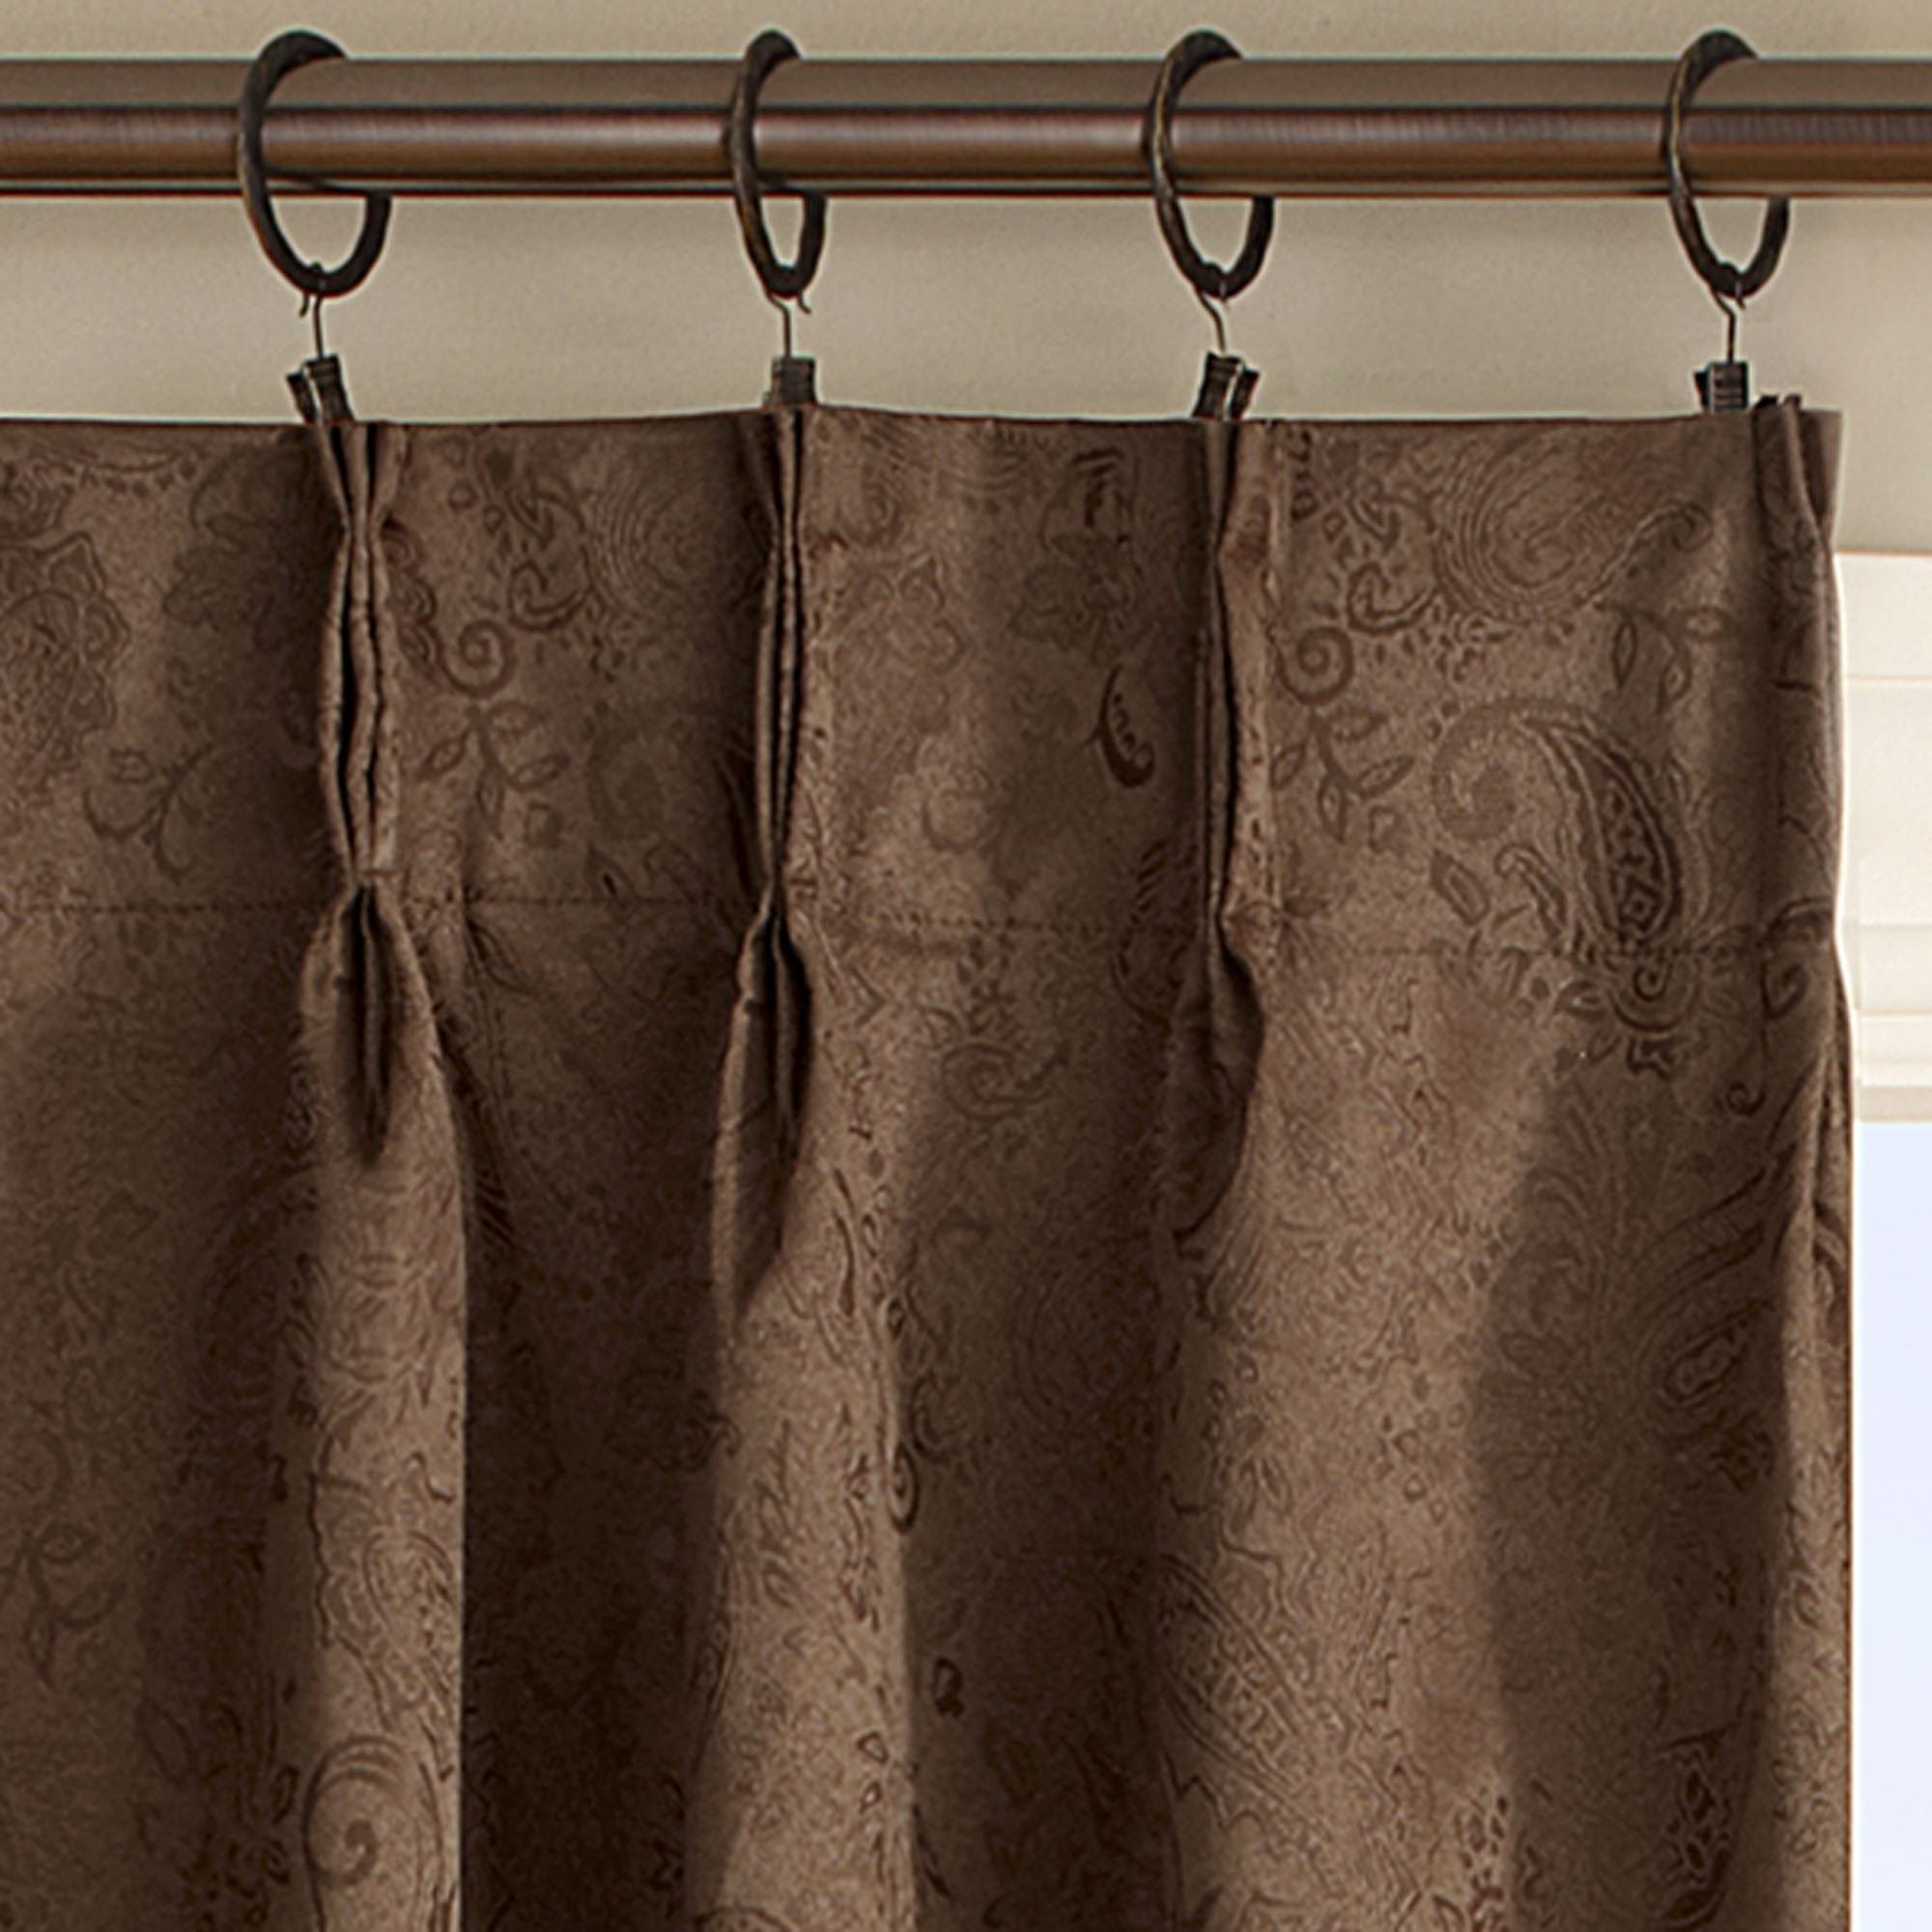 curtains curtain pinch decorations grey ideas home pleat